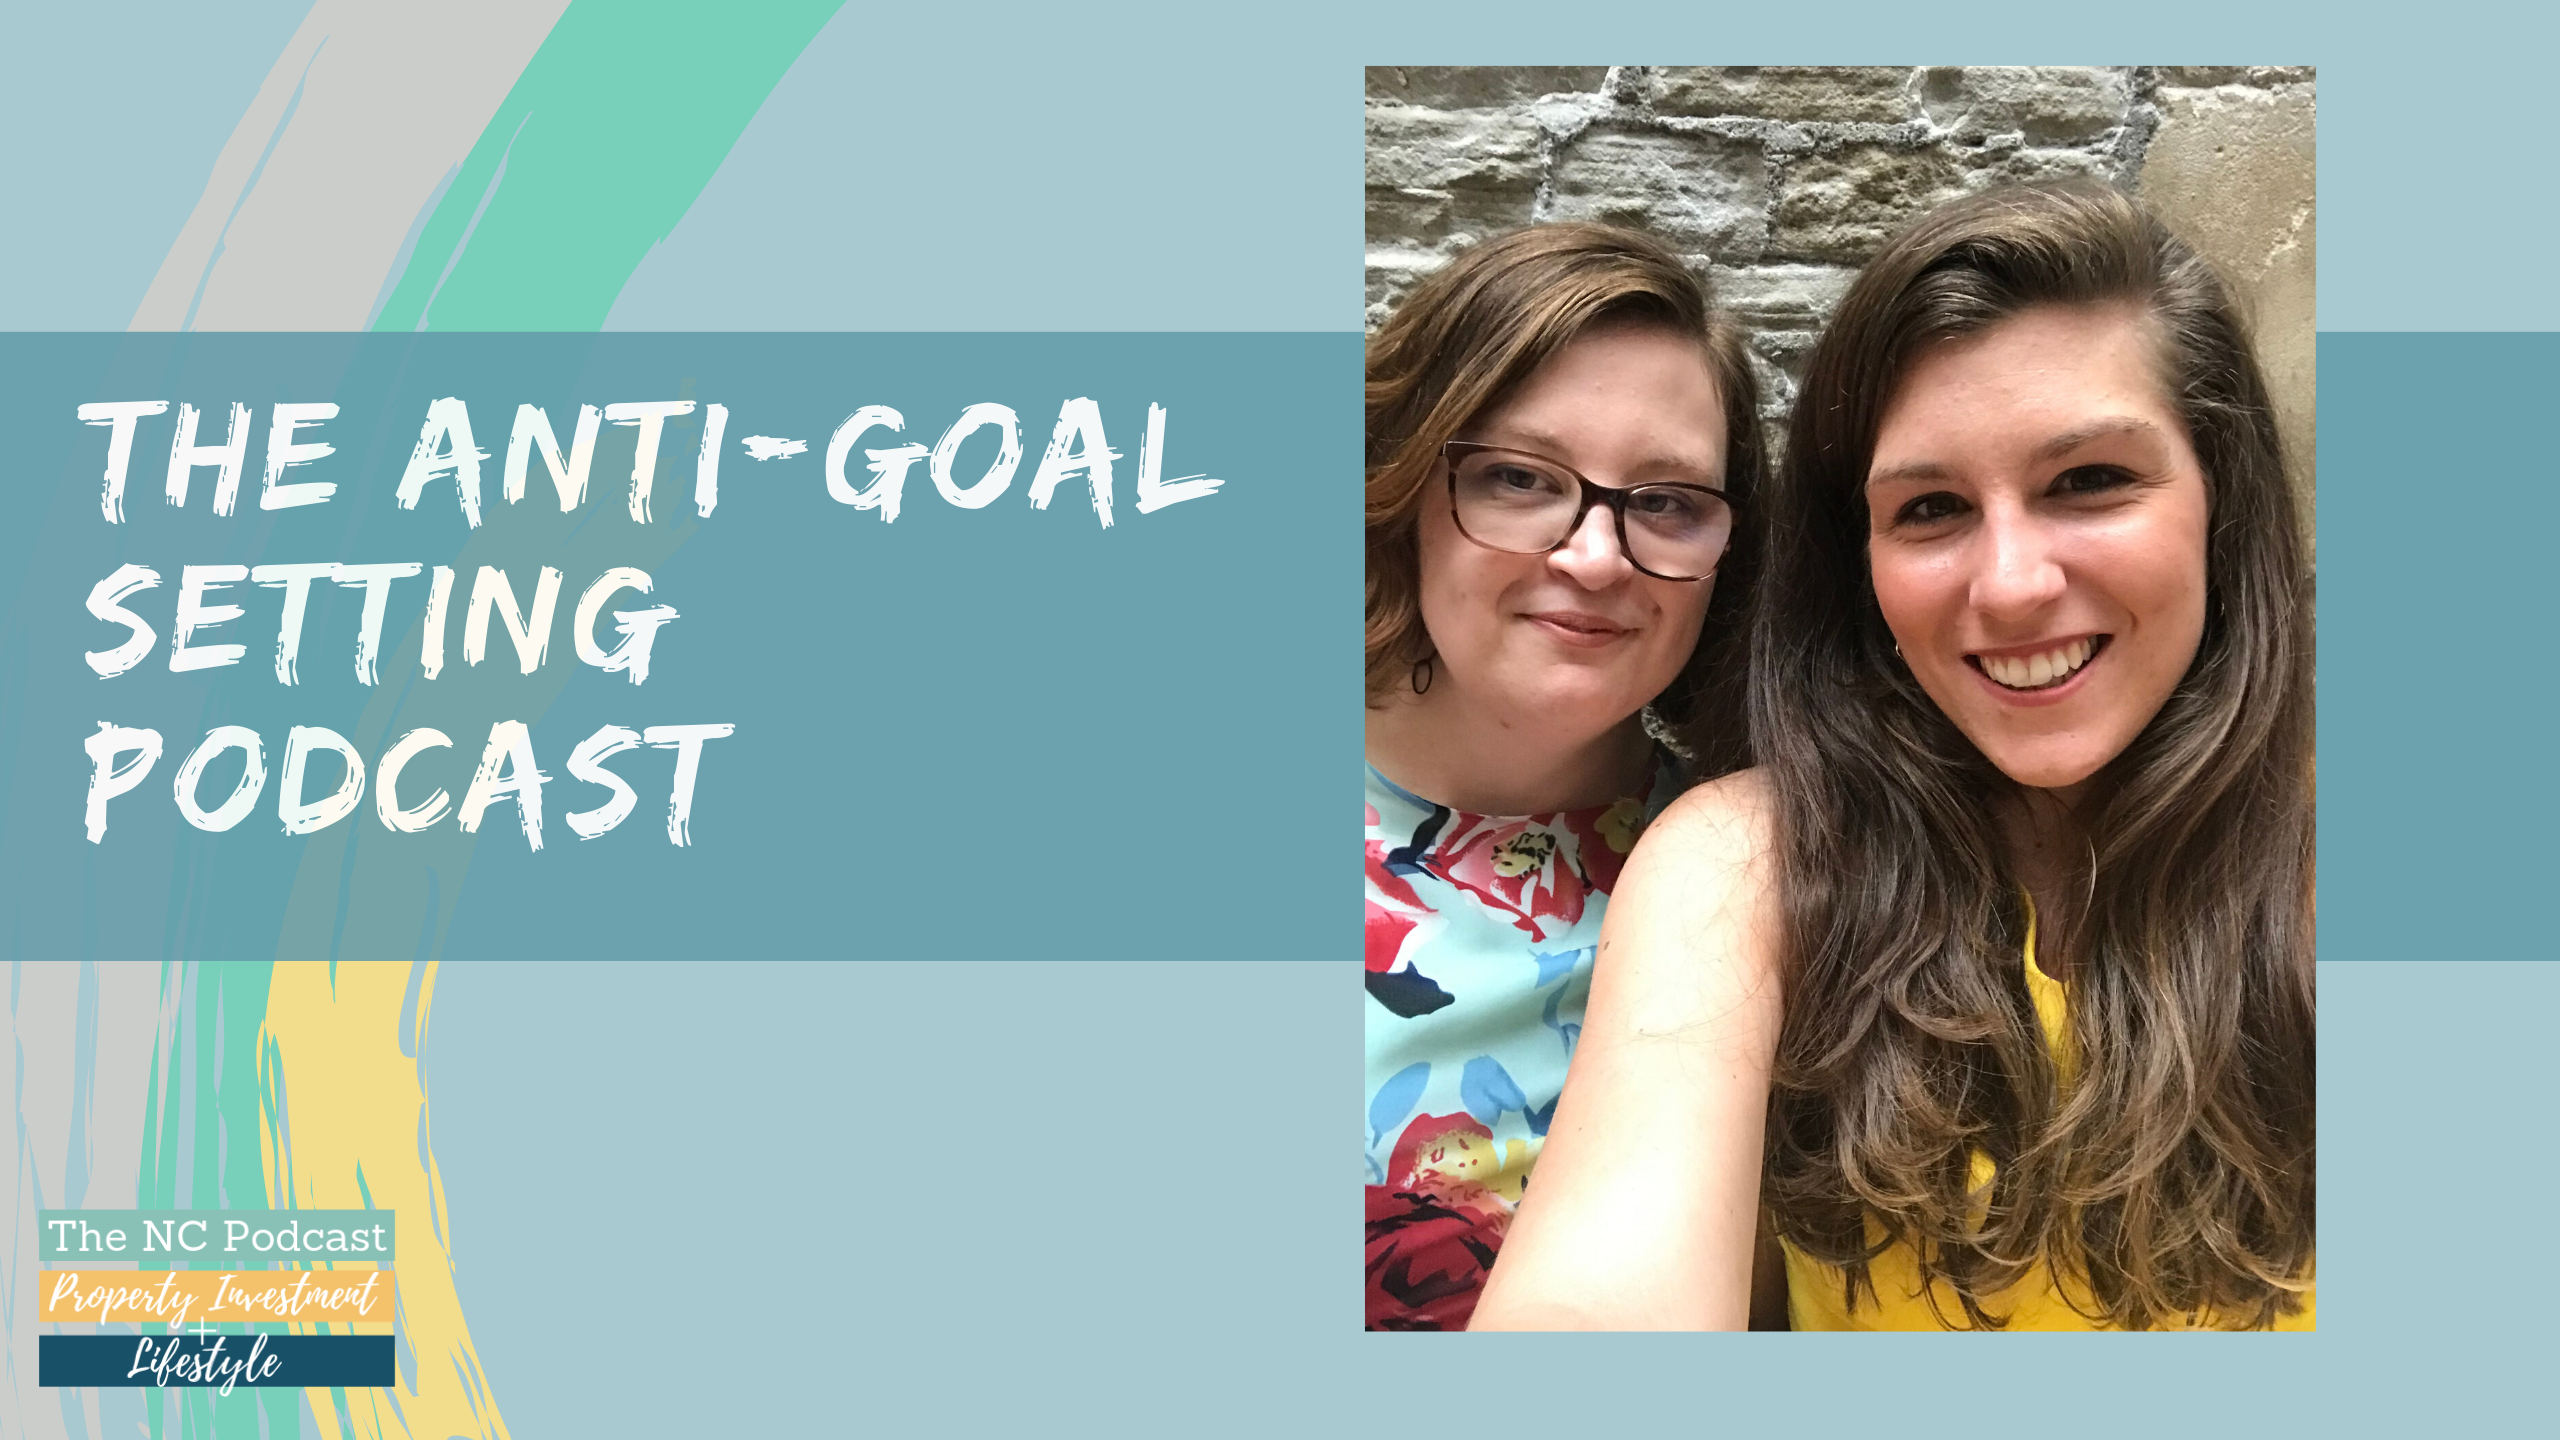 The Anti-Goal Setting Podcast!